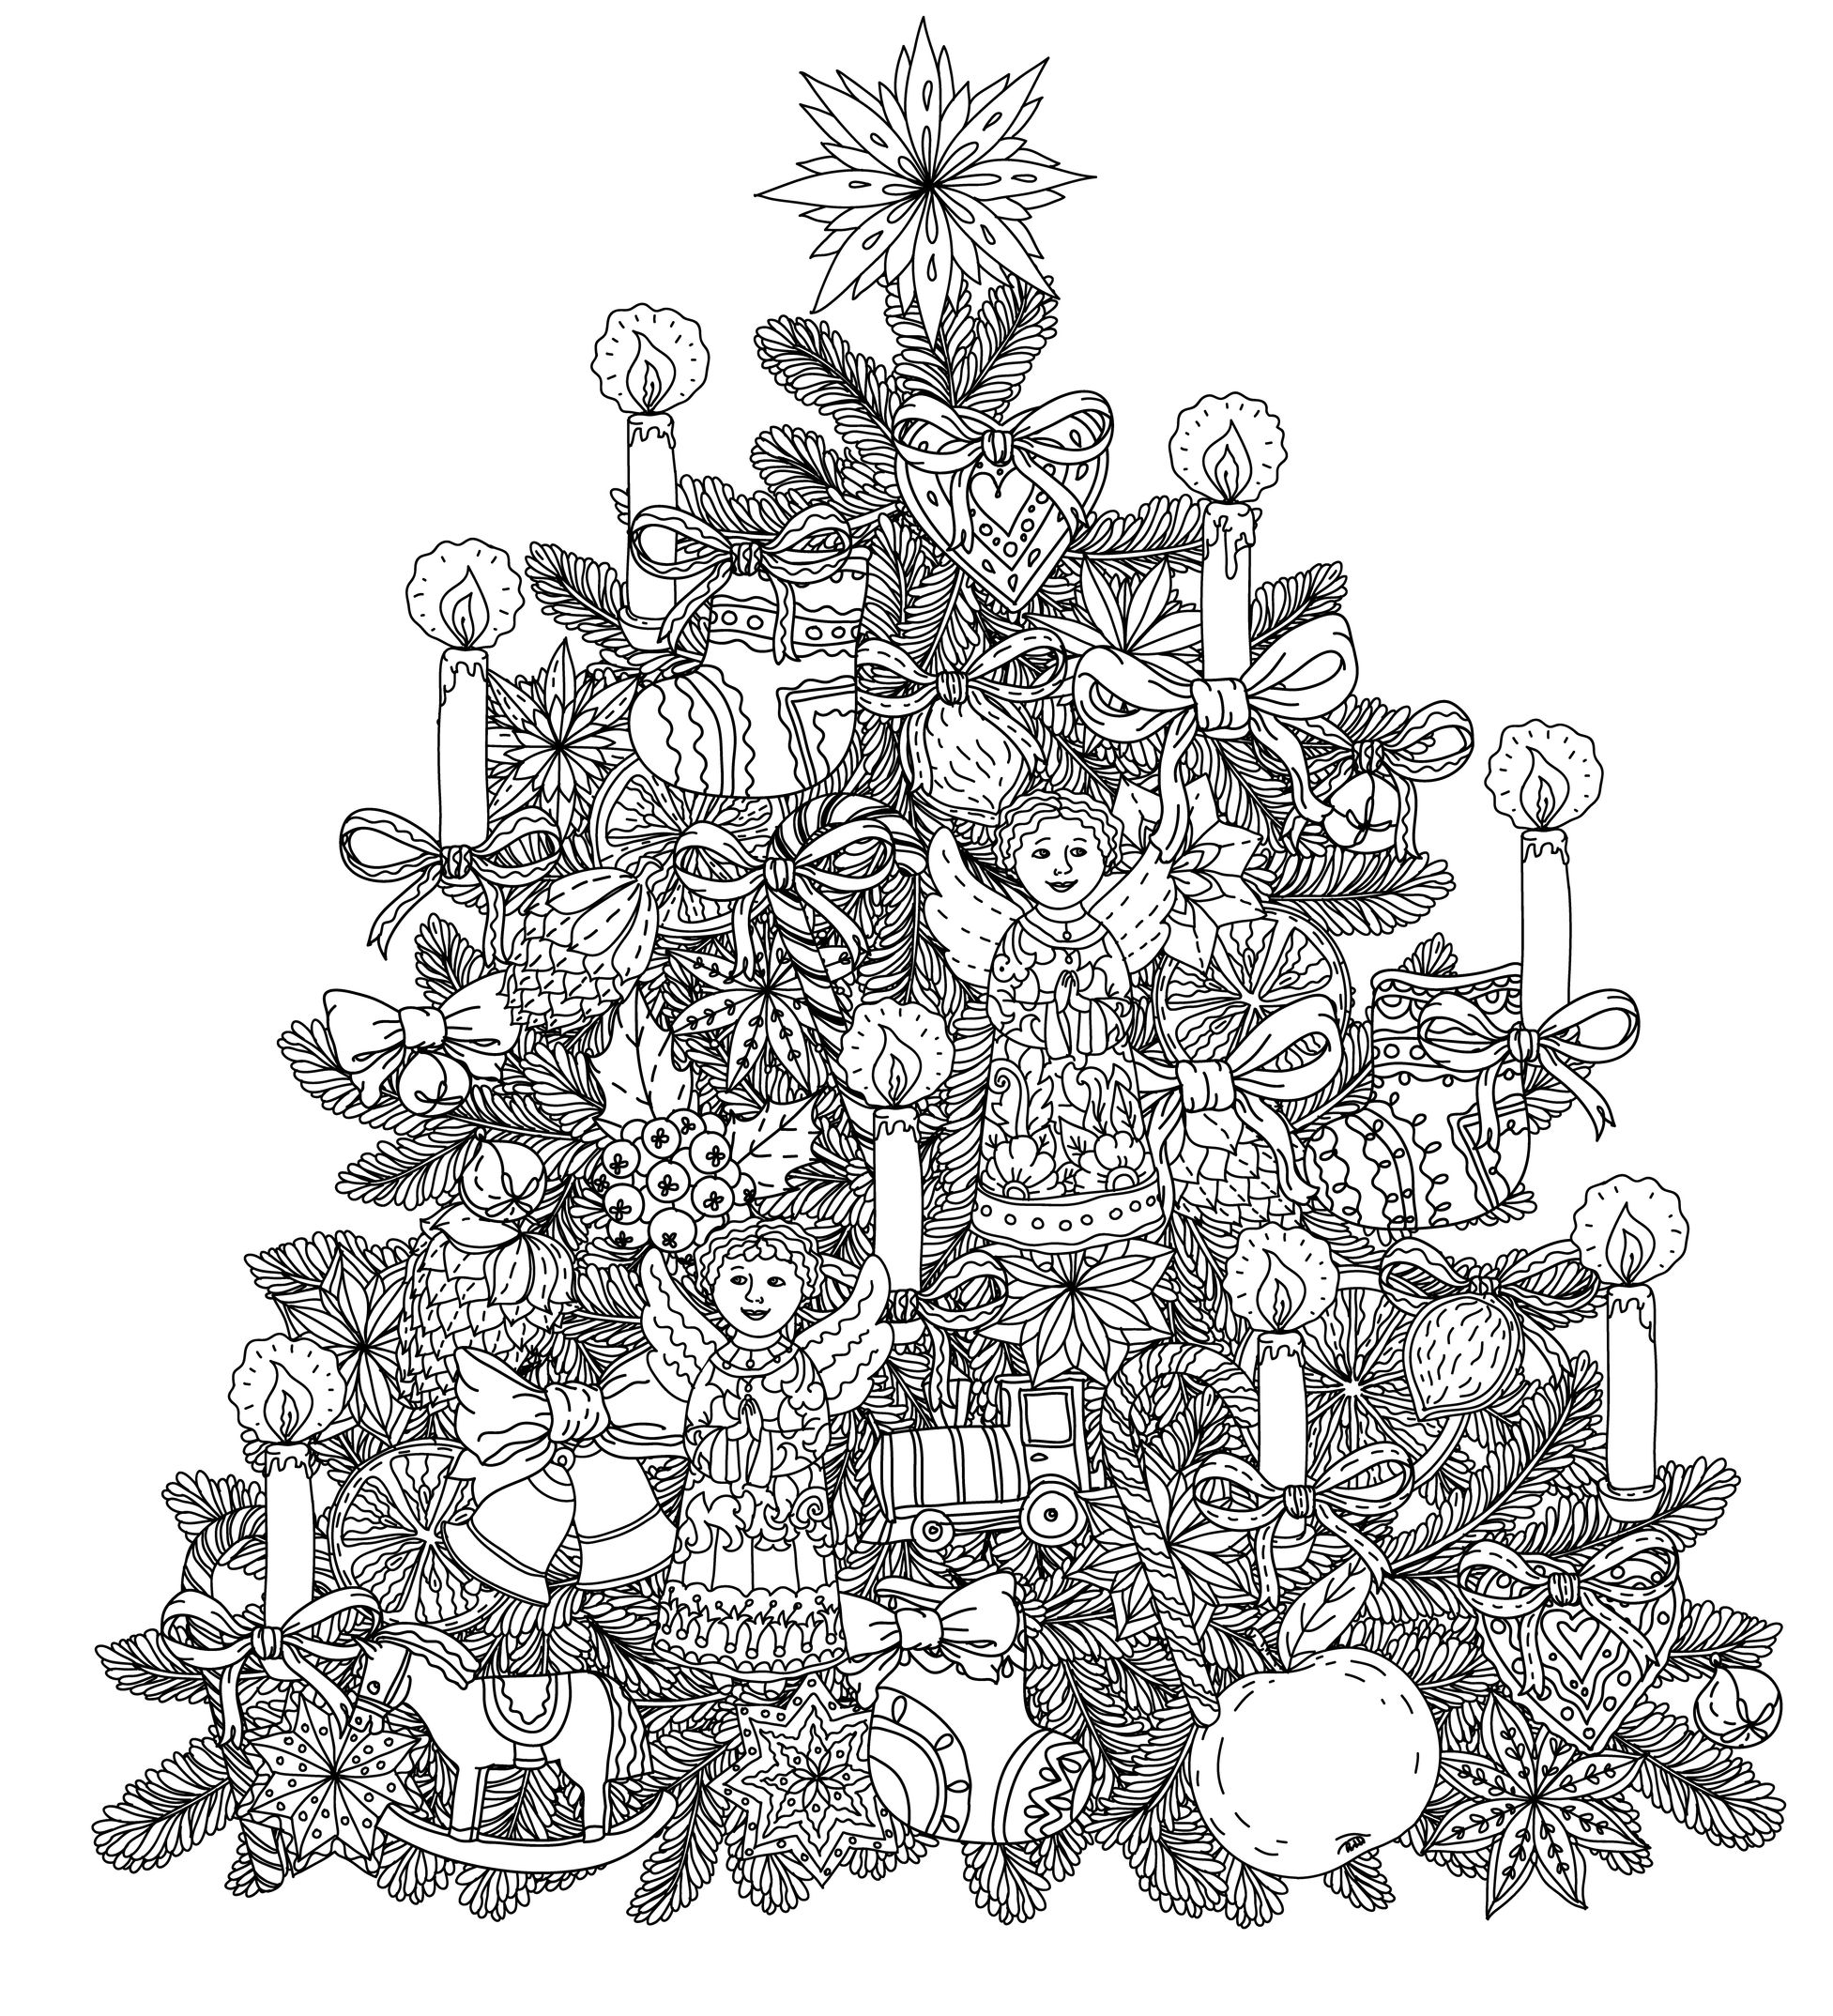 Colouring in xmas tree - Christmas Tree Ornament With Decorative Items Angels Candles And Socks A Lot Of